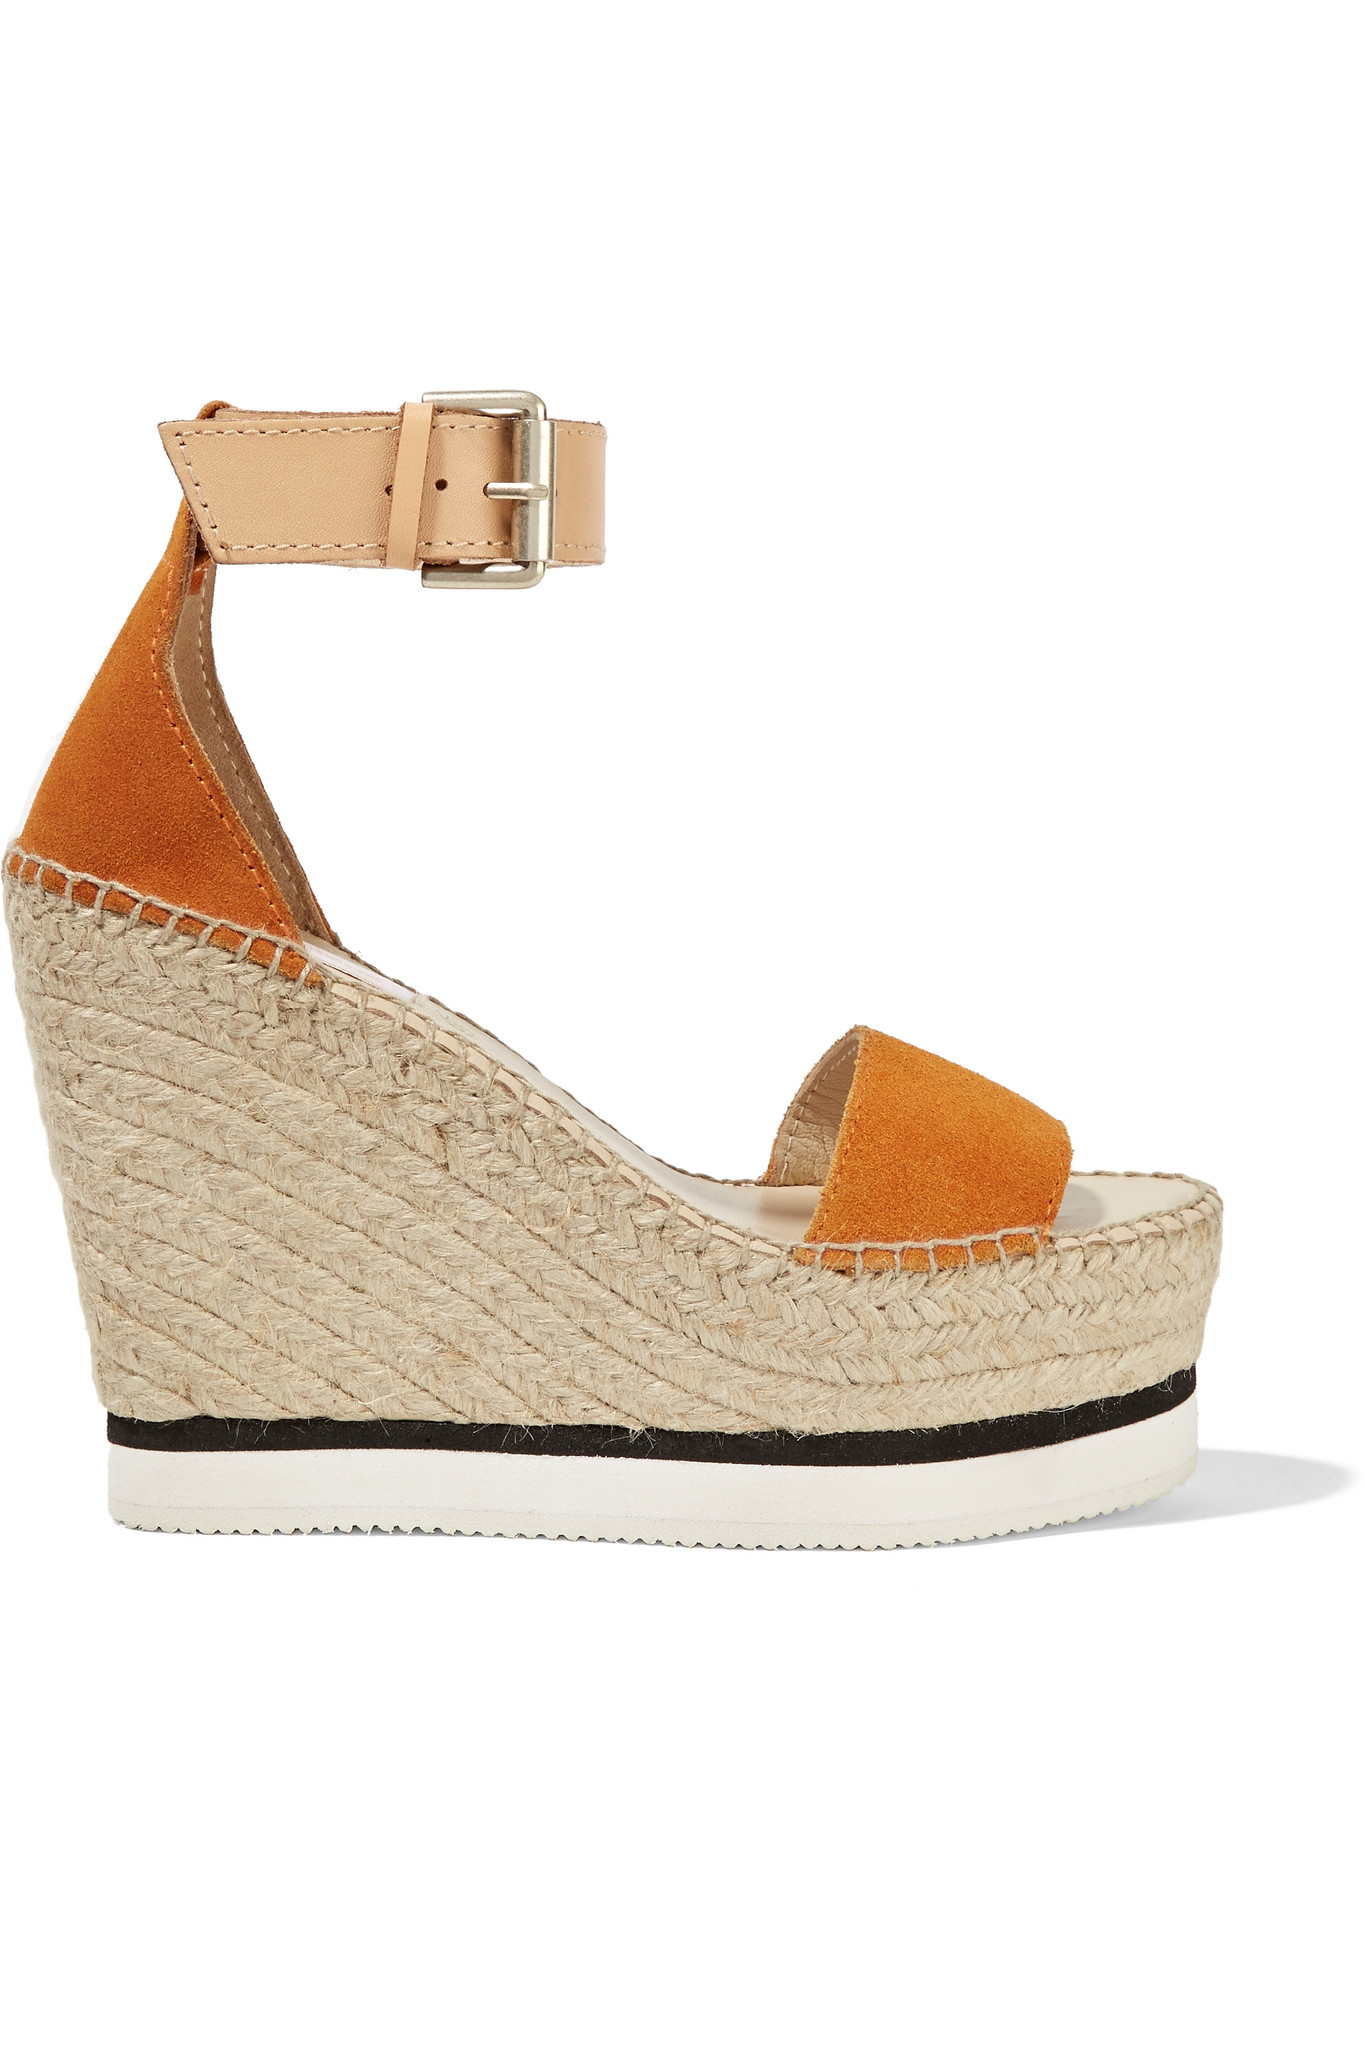 e37811bb77e99 Lyst - See By Chloé See By Chloé Suede And Leather Espadrille Wedge ...